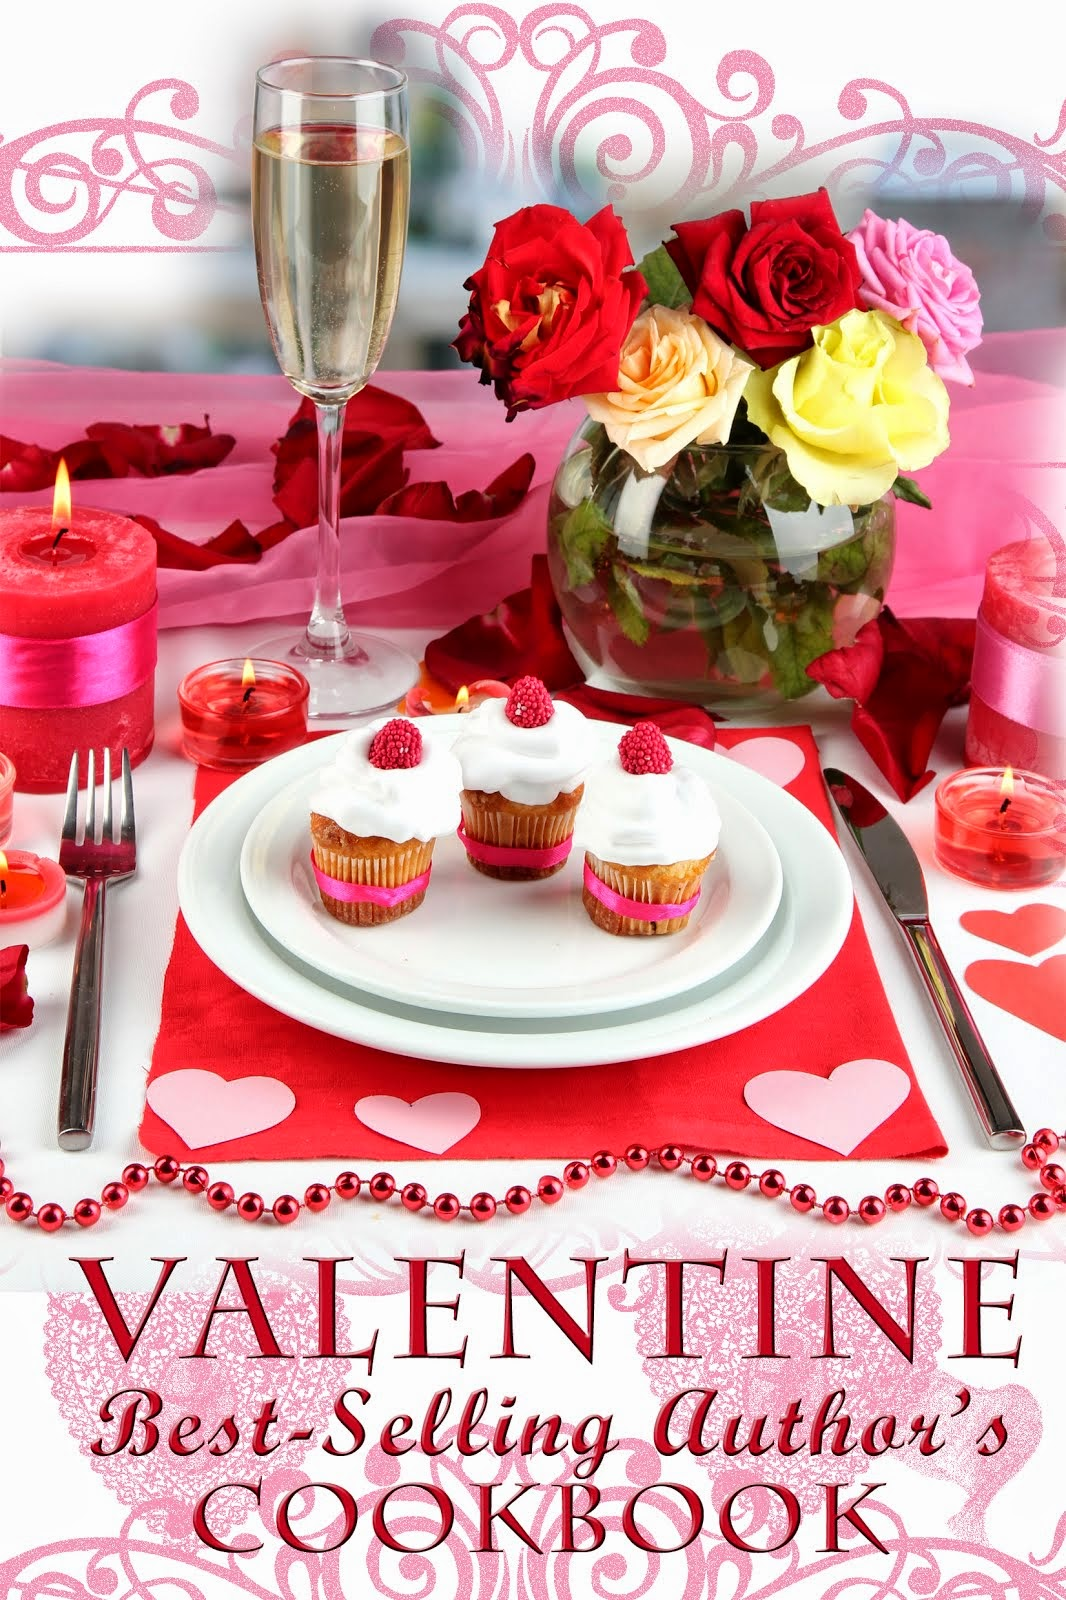 Valentine Cookbook